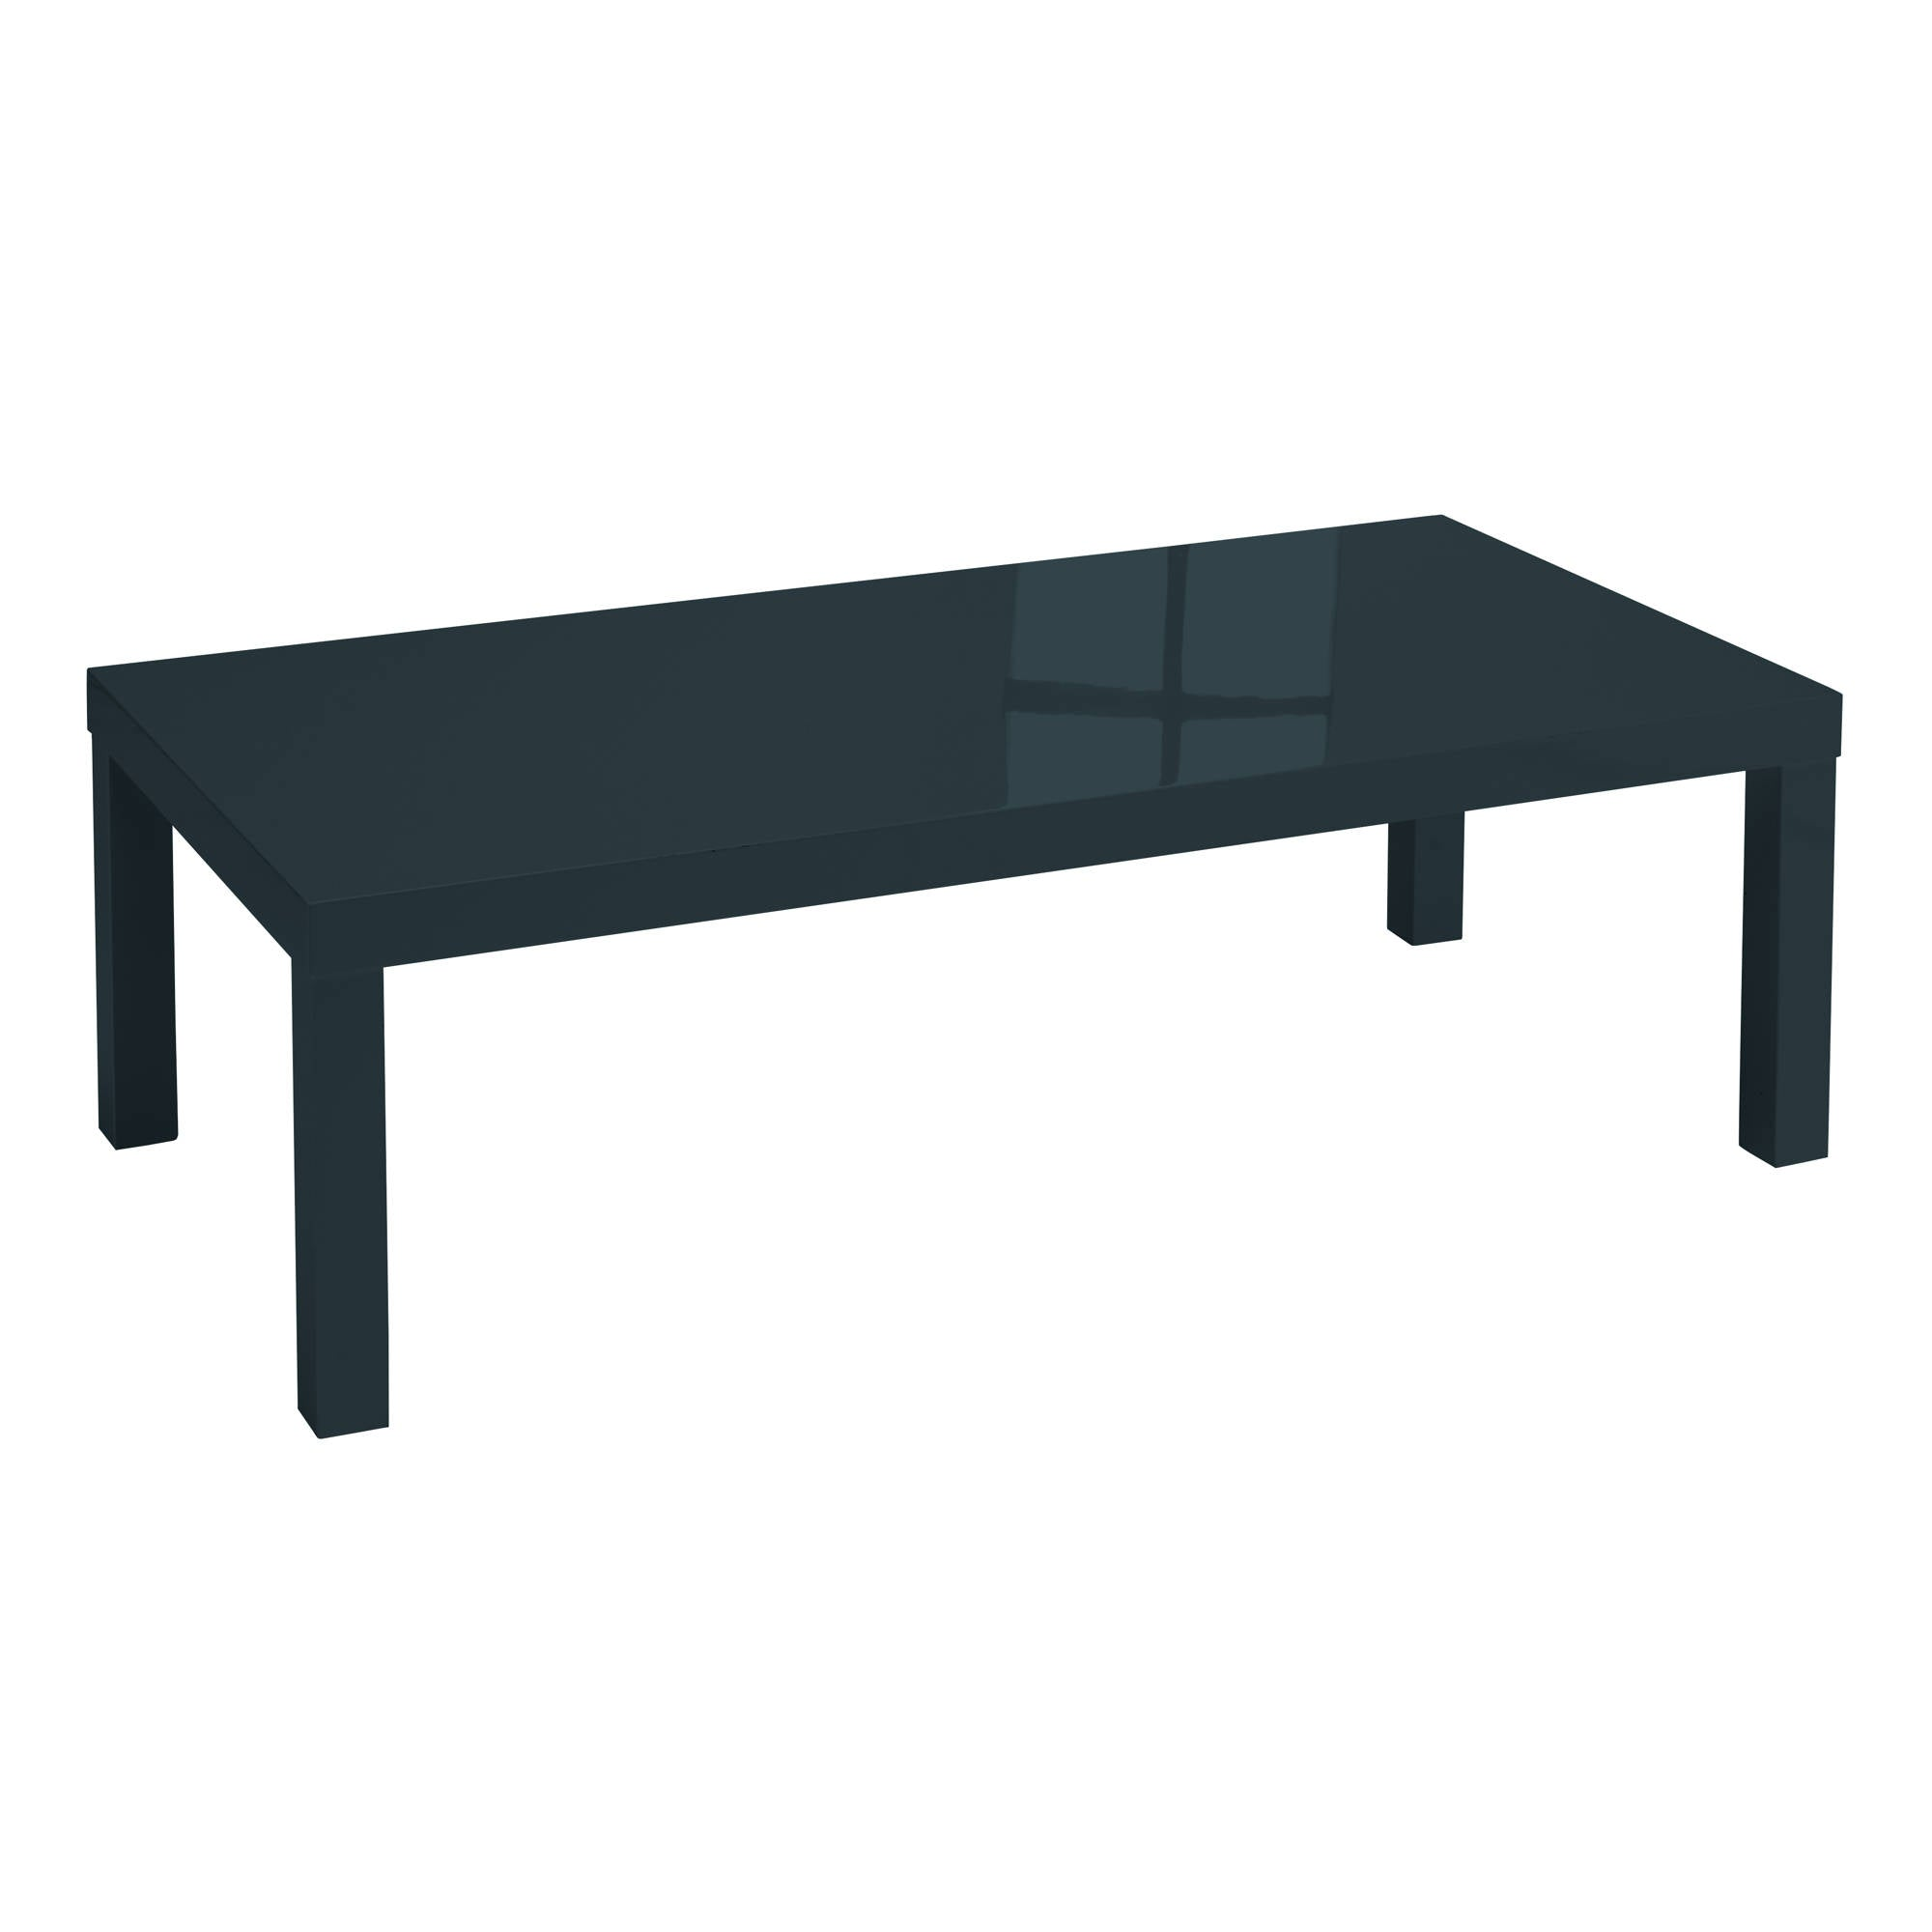 Sterling Medium Dining Table in Charcoal - Ezzo